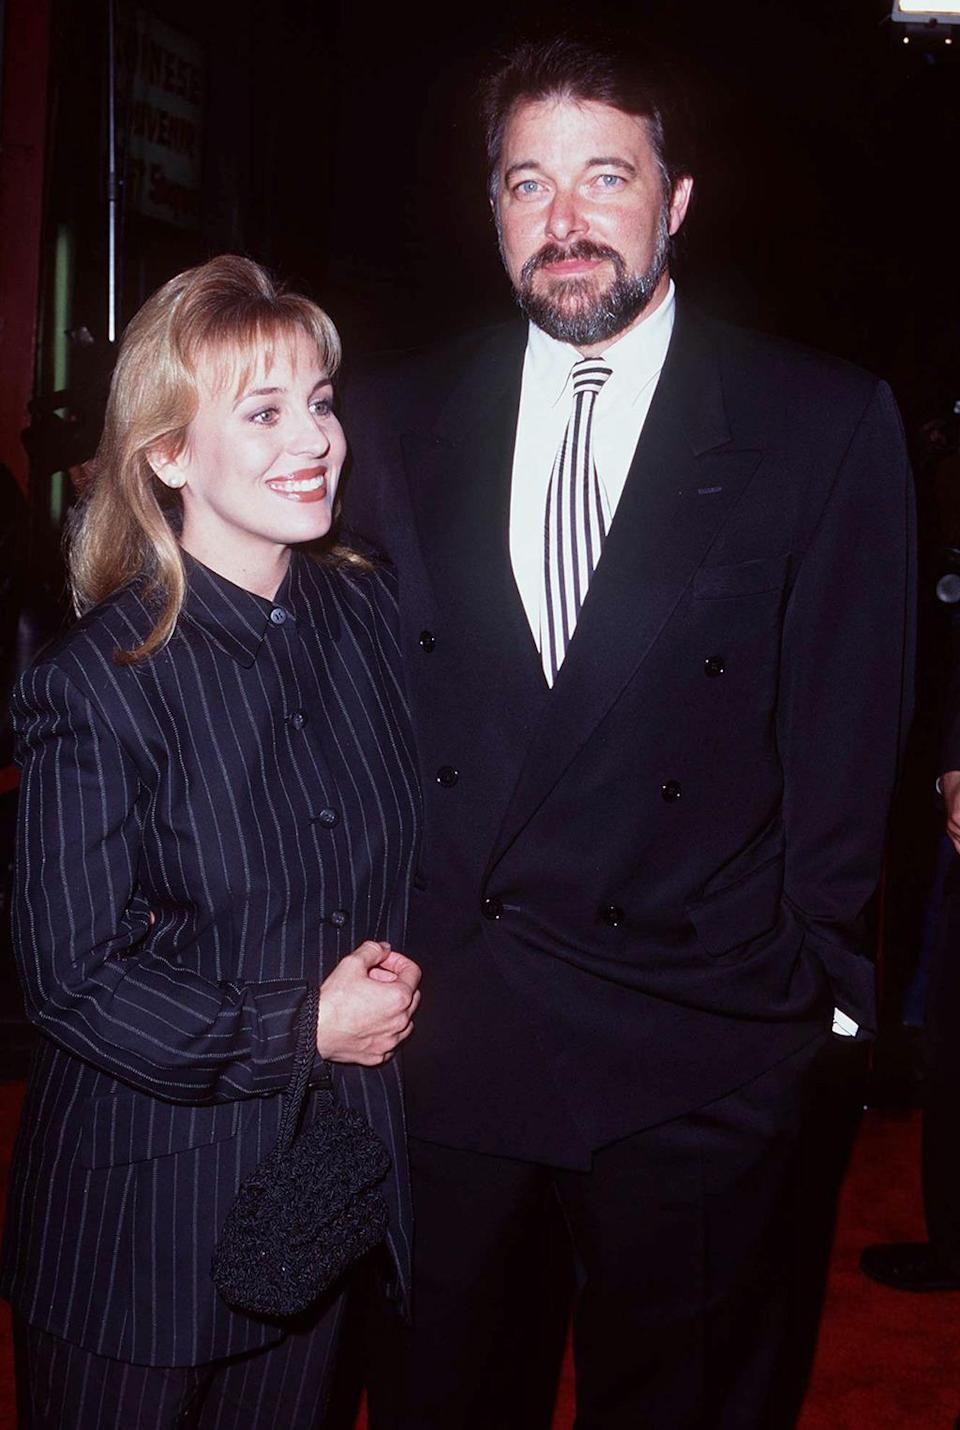 <p>Jonathan Frakes (William Riker, <i>The Next Generation</i>) and wife Genie Francis (<i>General Hospital</i>) attend the premiere. Frakes would voice William Riker again for the <i>Family Guy </i>videogame, <i>Family Guy: The Quest for Stuff</i>. <i>(Photo: Steve Granitz/WireImage)</i></p>